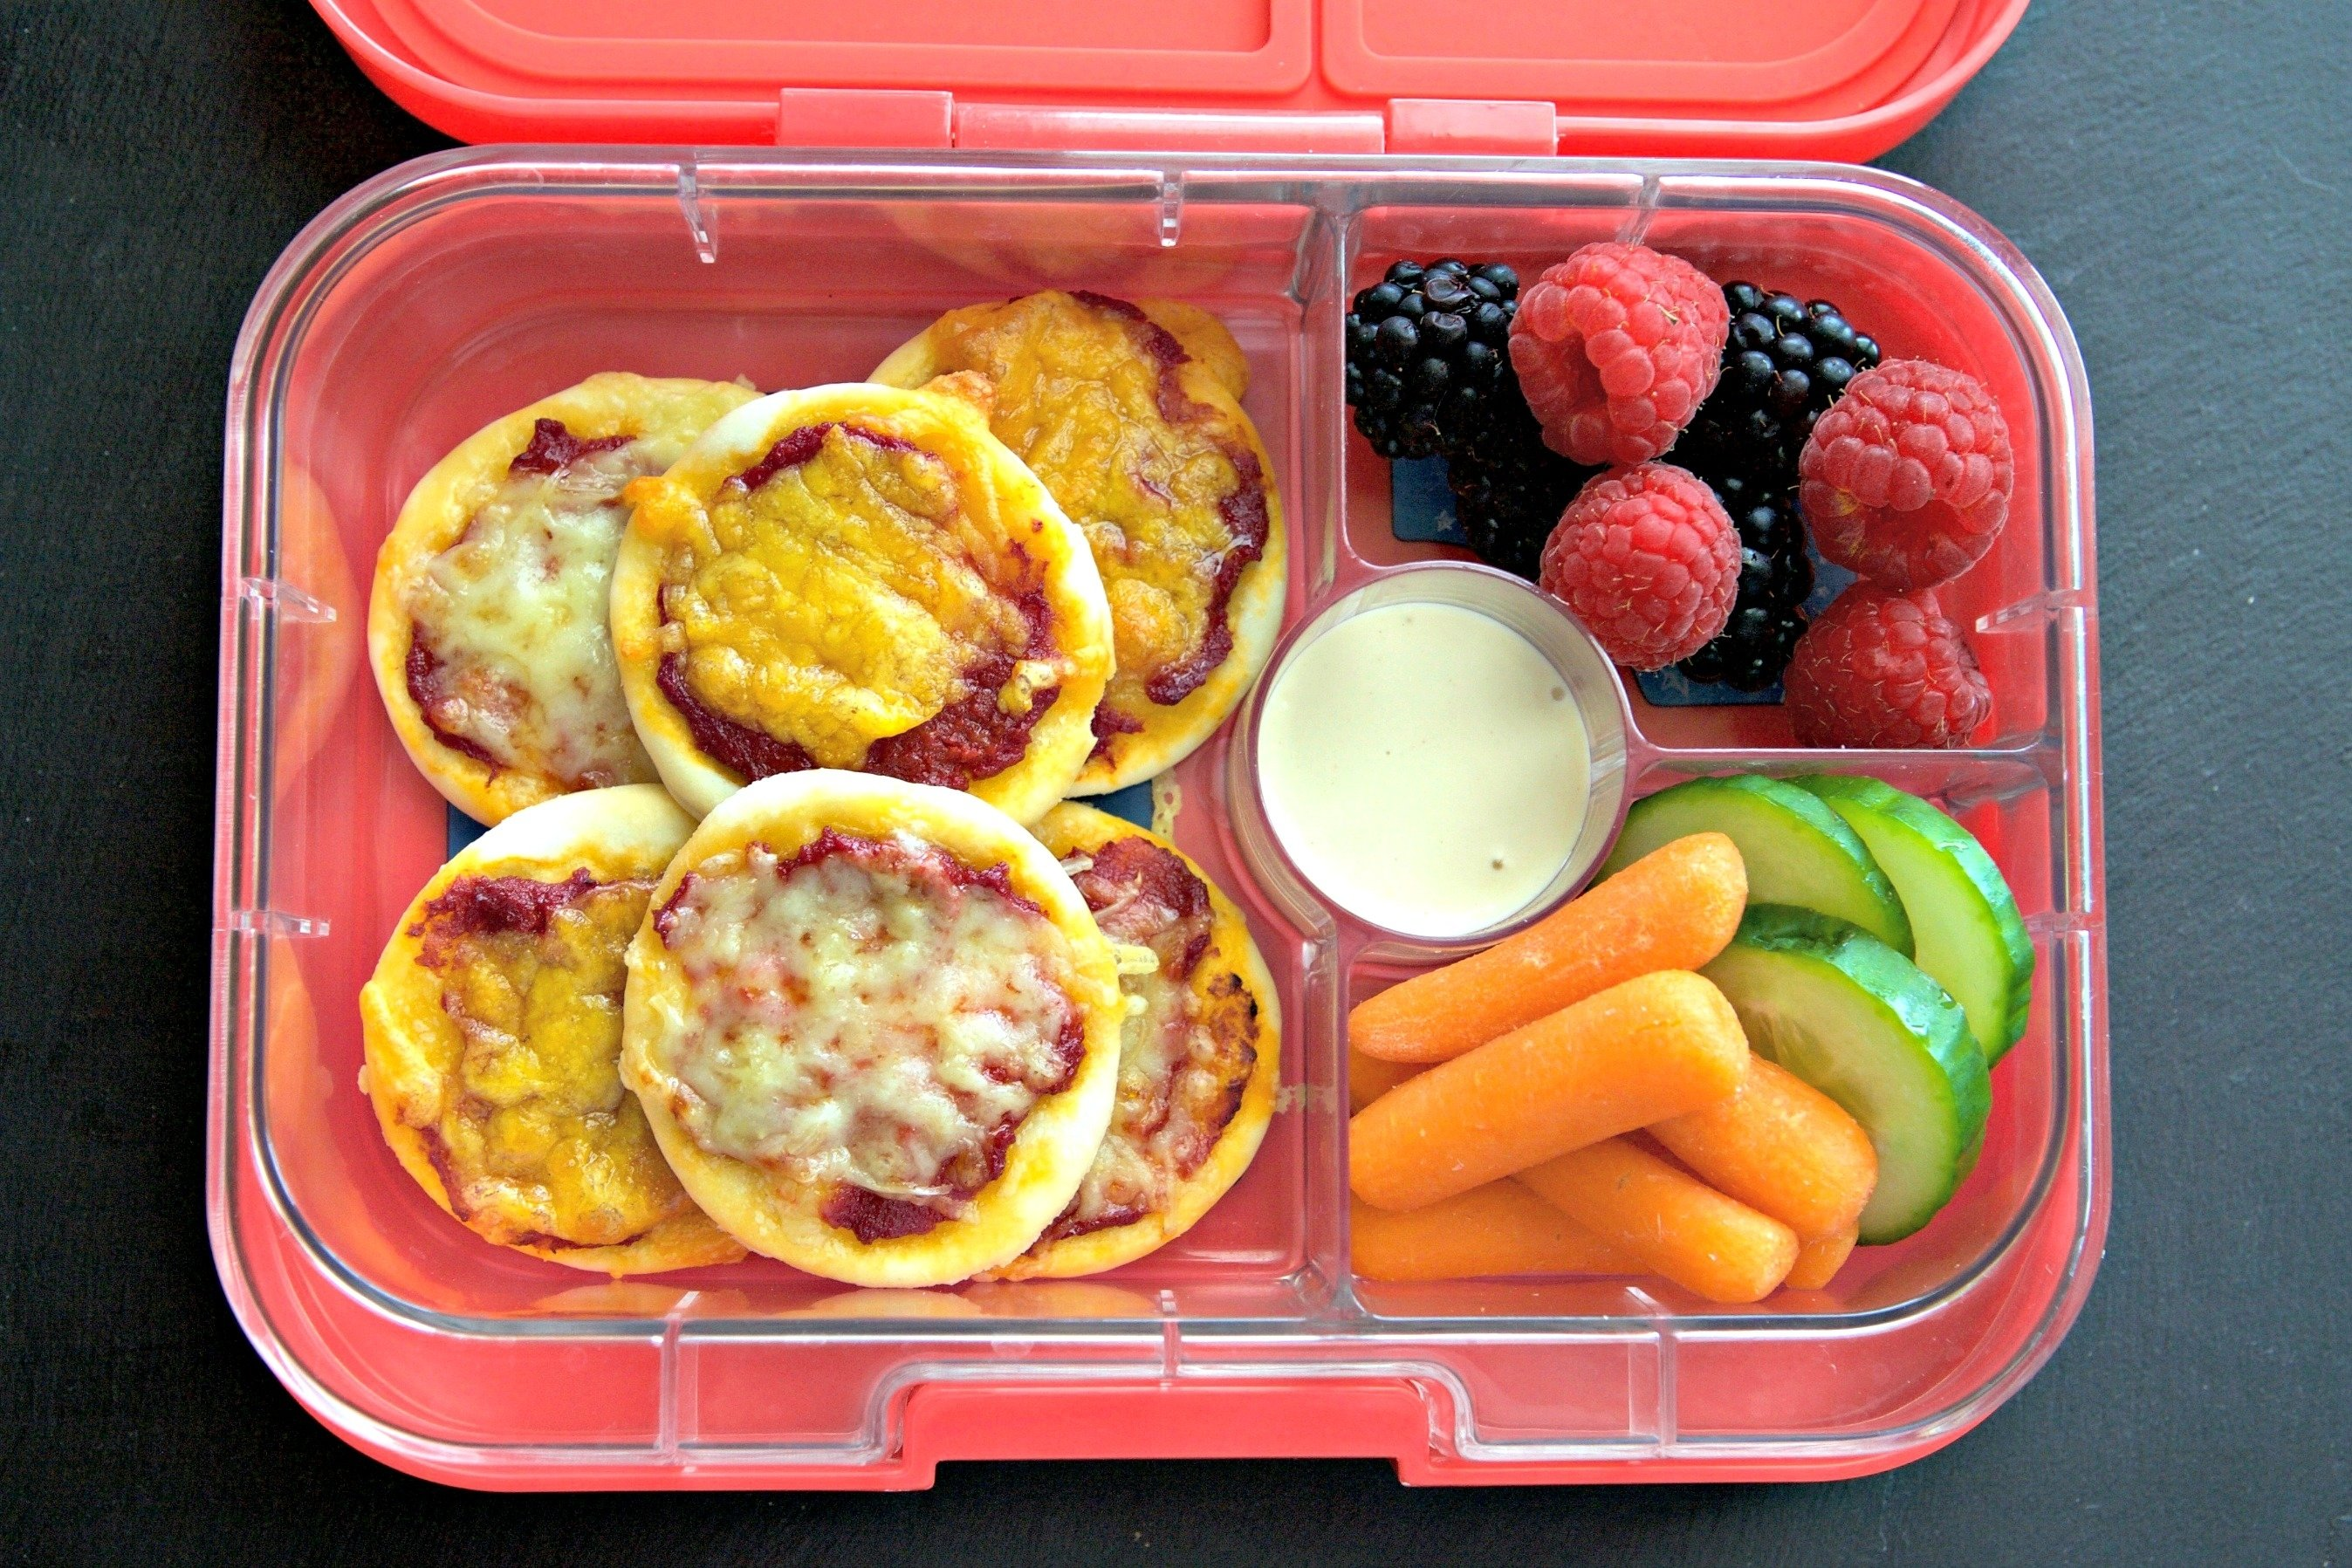 10 Pretty Healthy Lunch Ideas For Picky Eaters mini pizza recipe the perfect picky eater meal yumbox 11 2020